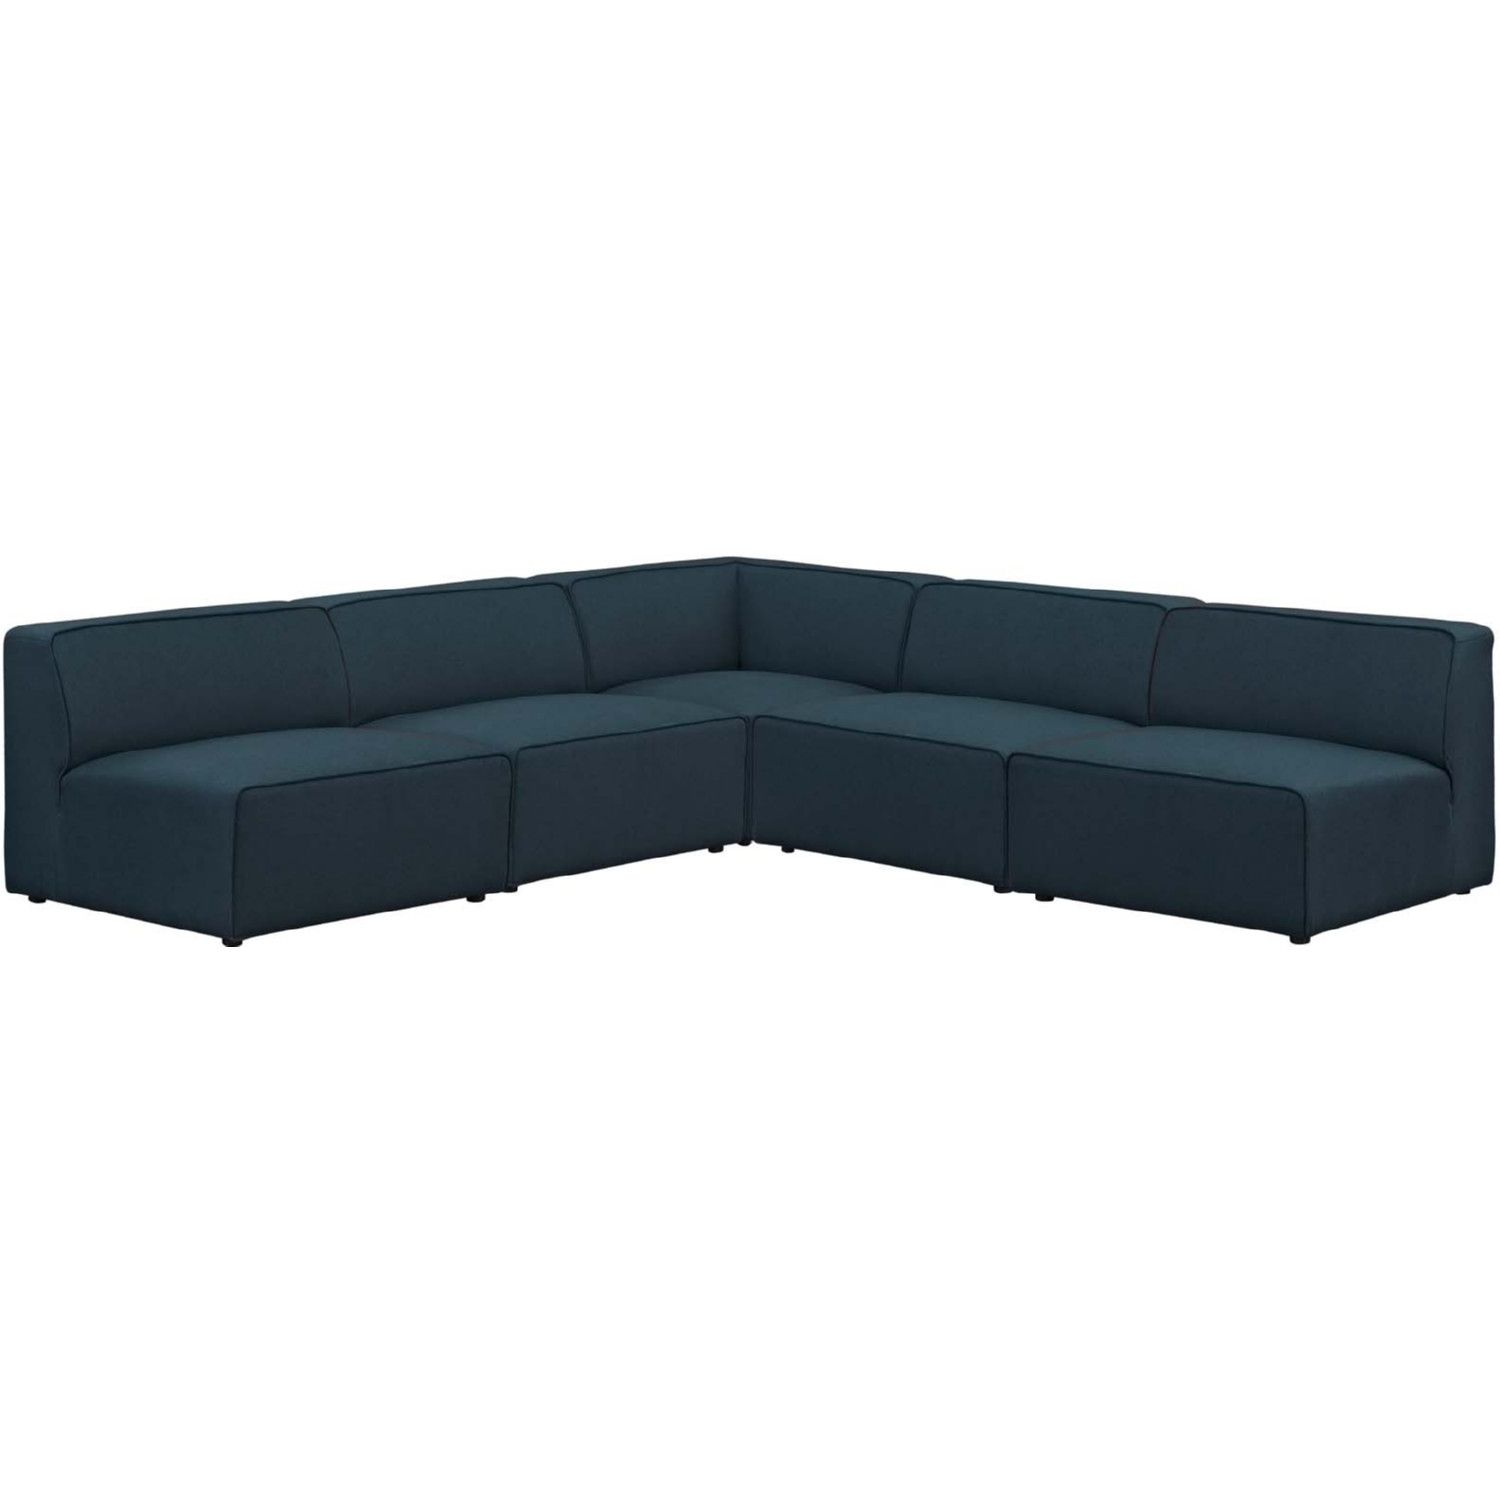 Best Modway Mingle 5 Piece Sectional Sofa Set Blue Fabric In 640 x 480